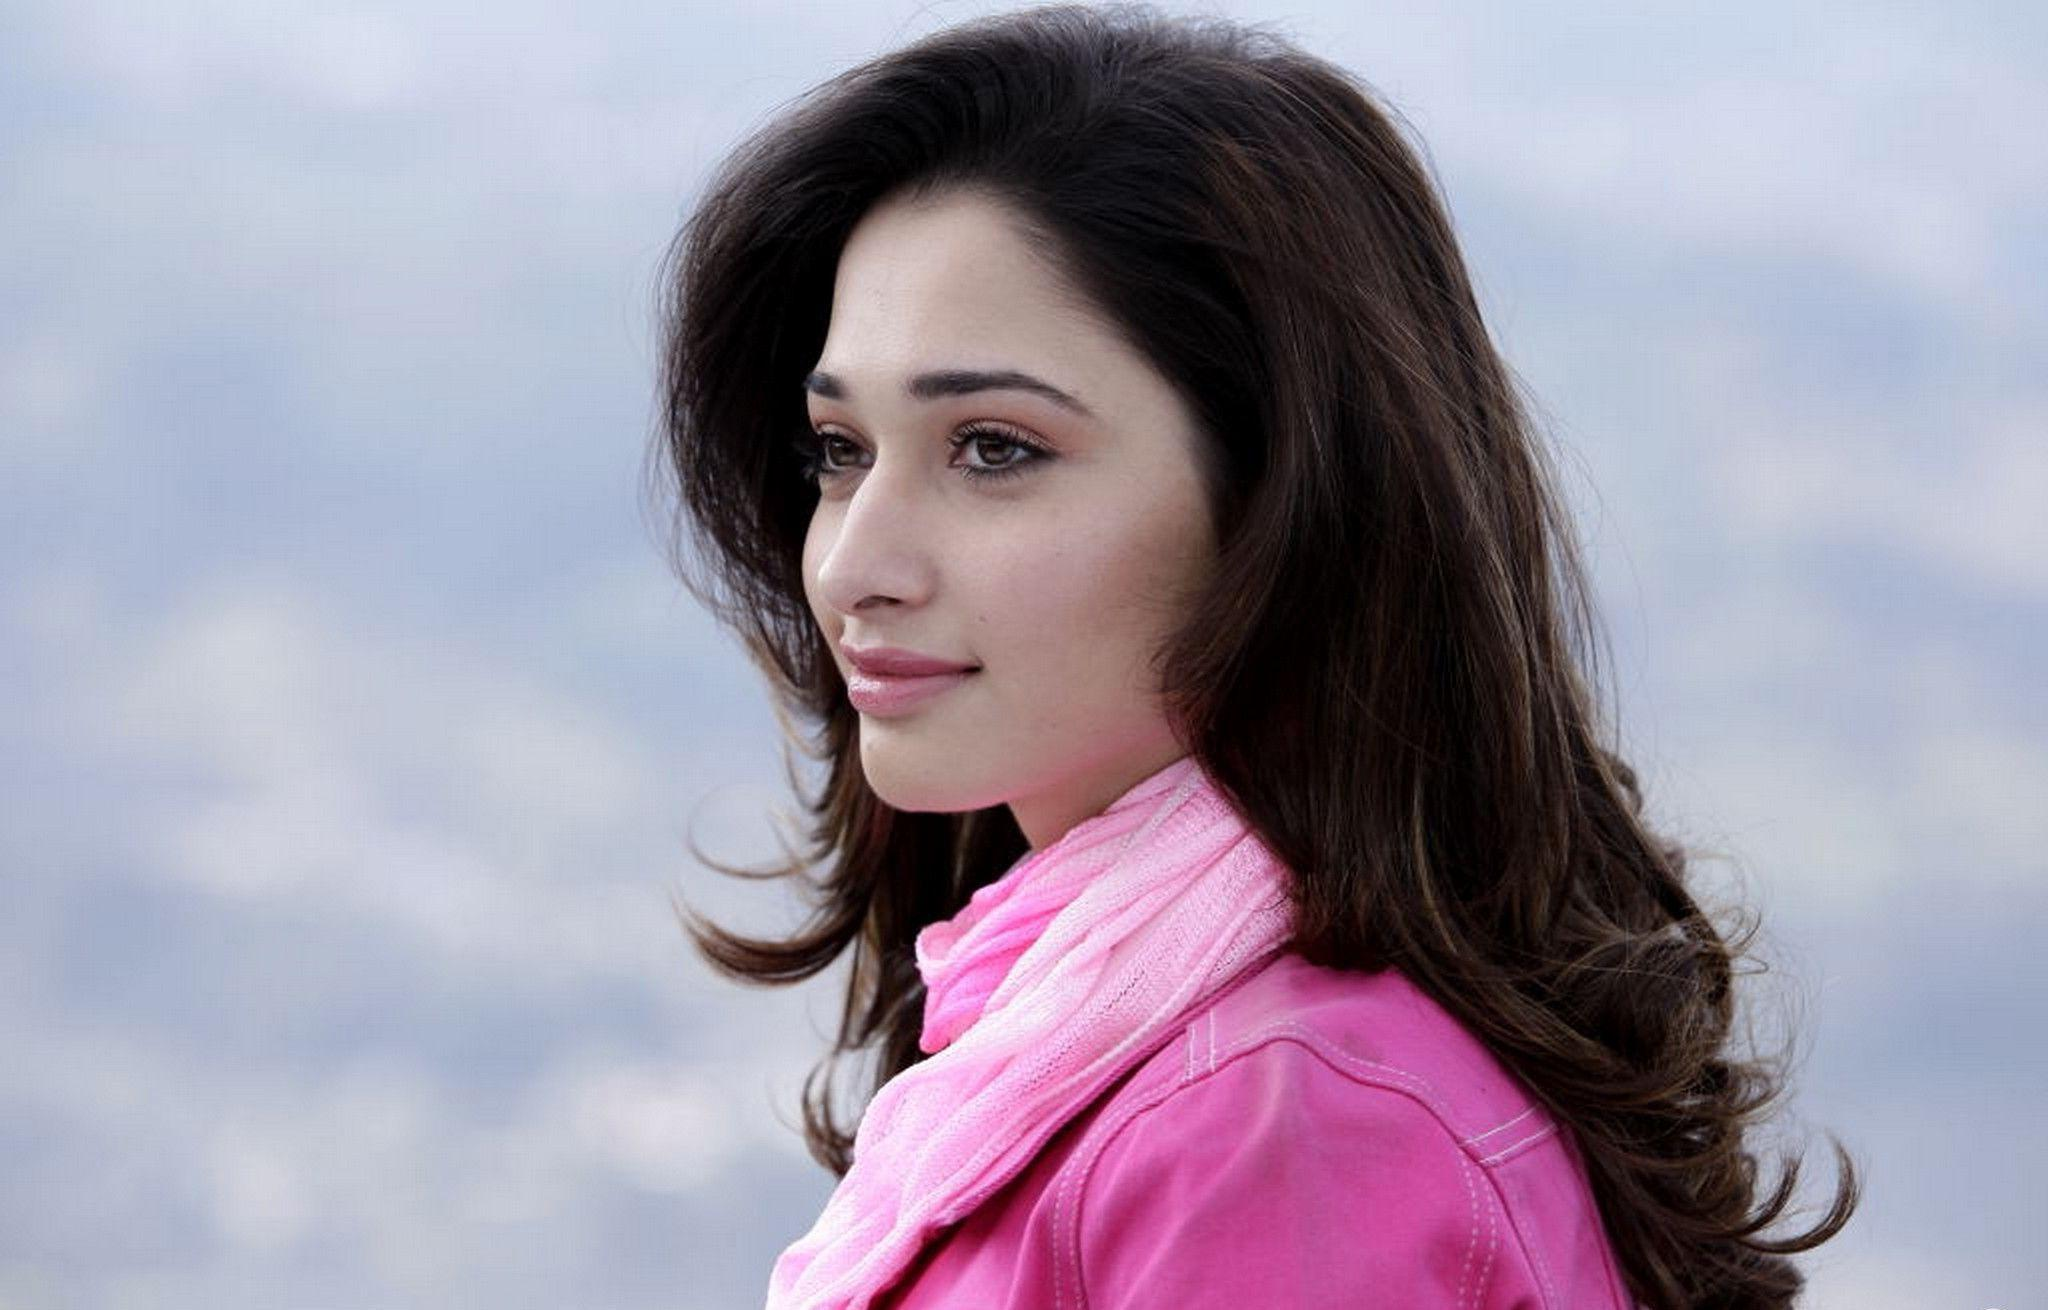 Tamanna Hd Saree Wallpaper: Tamanna Bhatia Wallpapers HD 2016